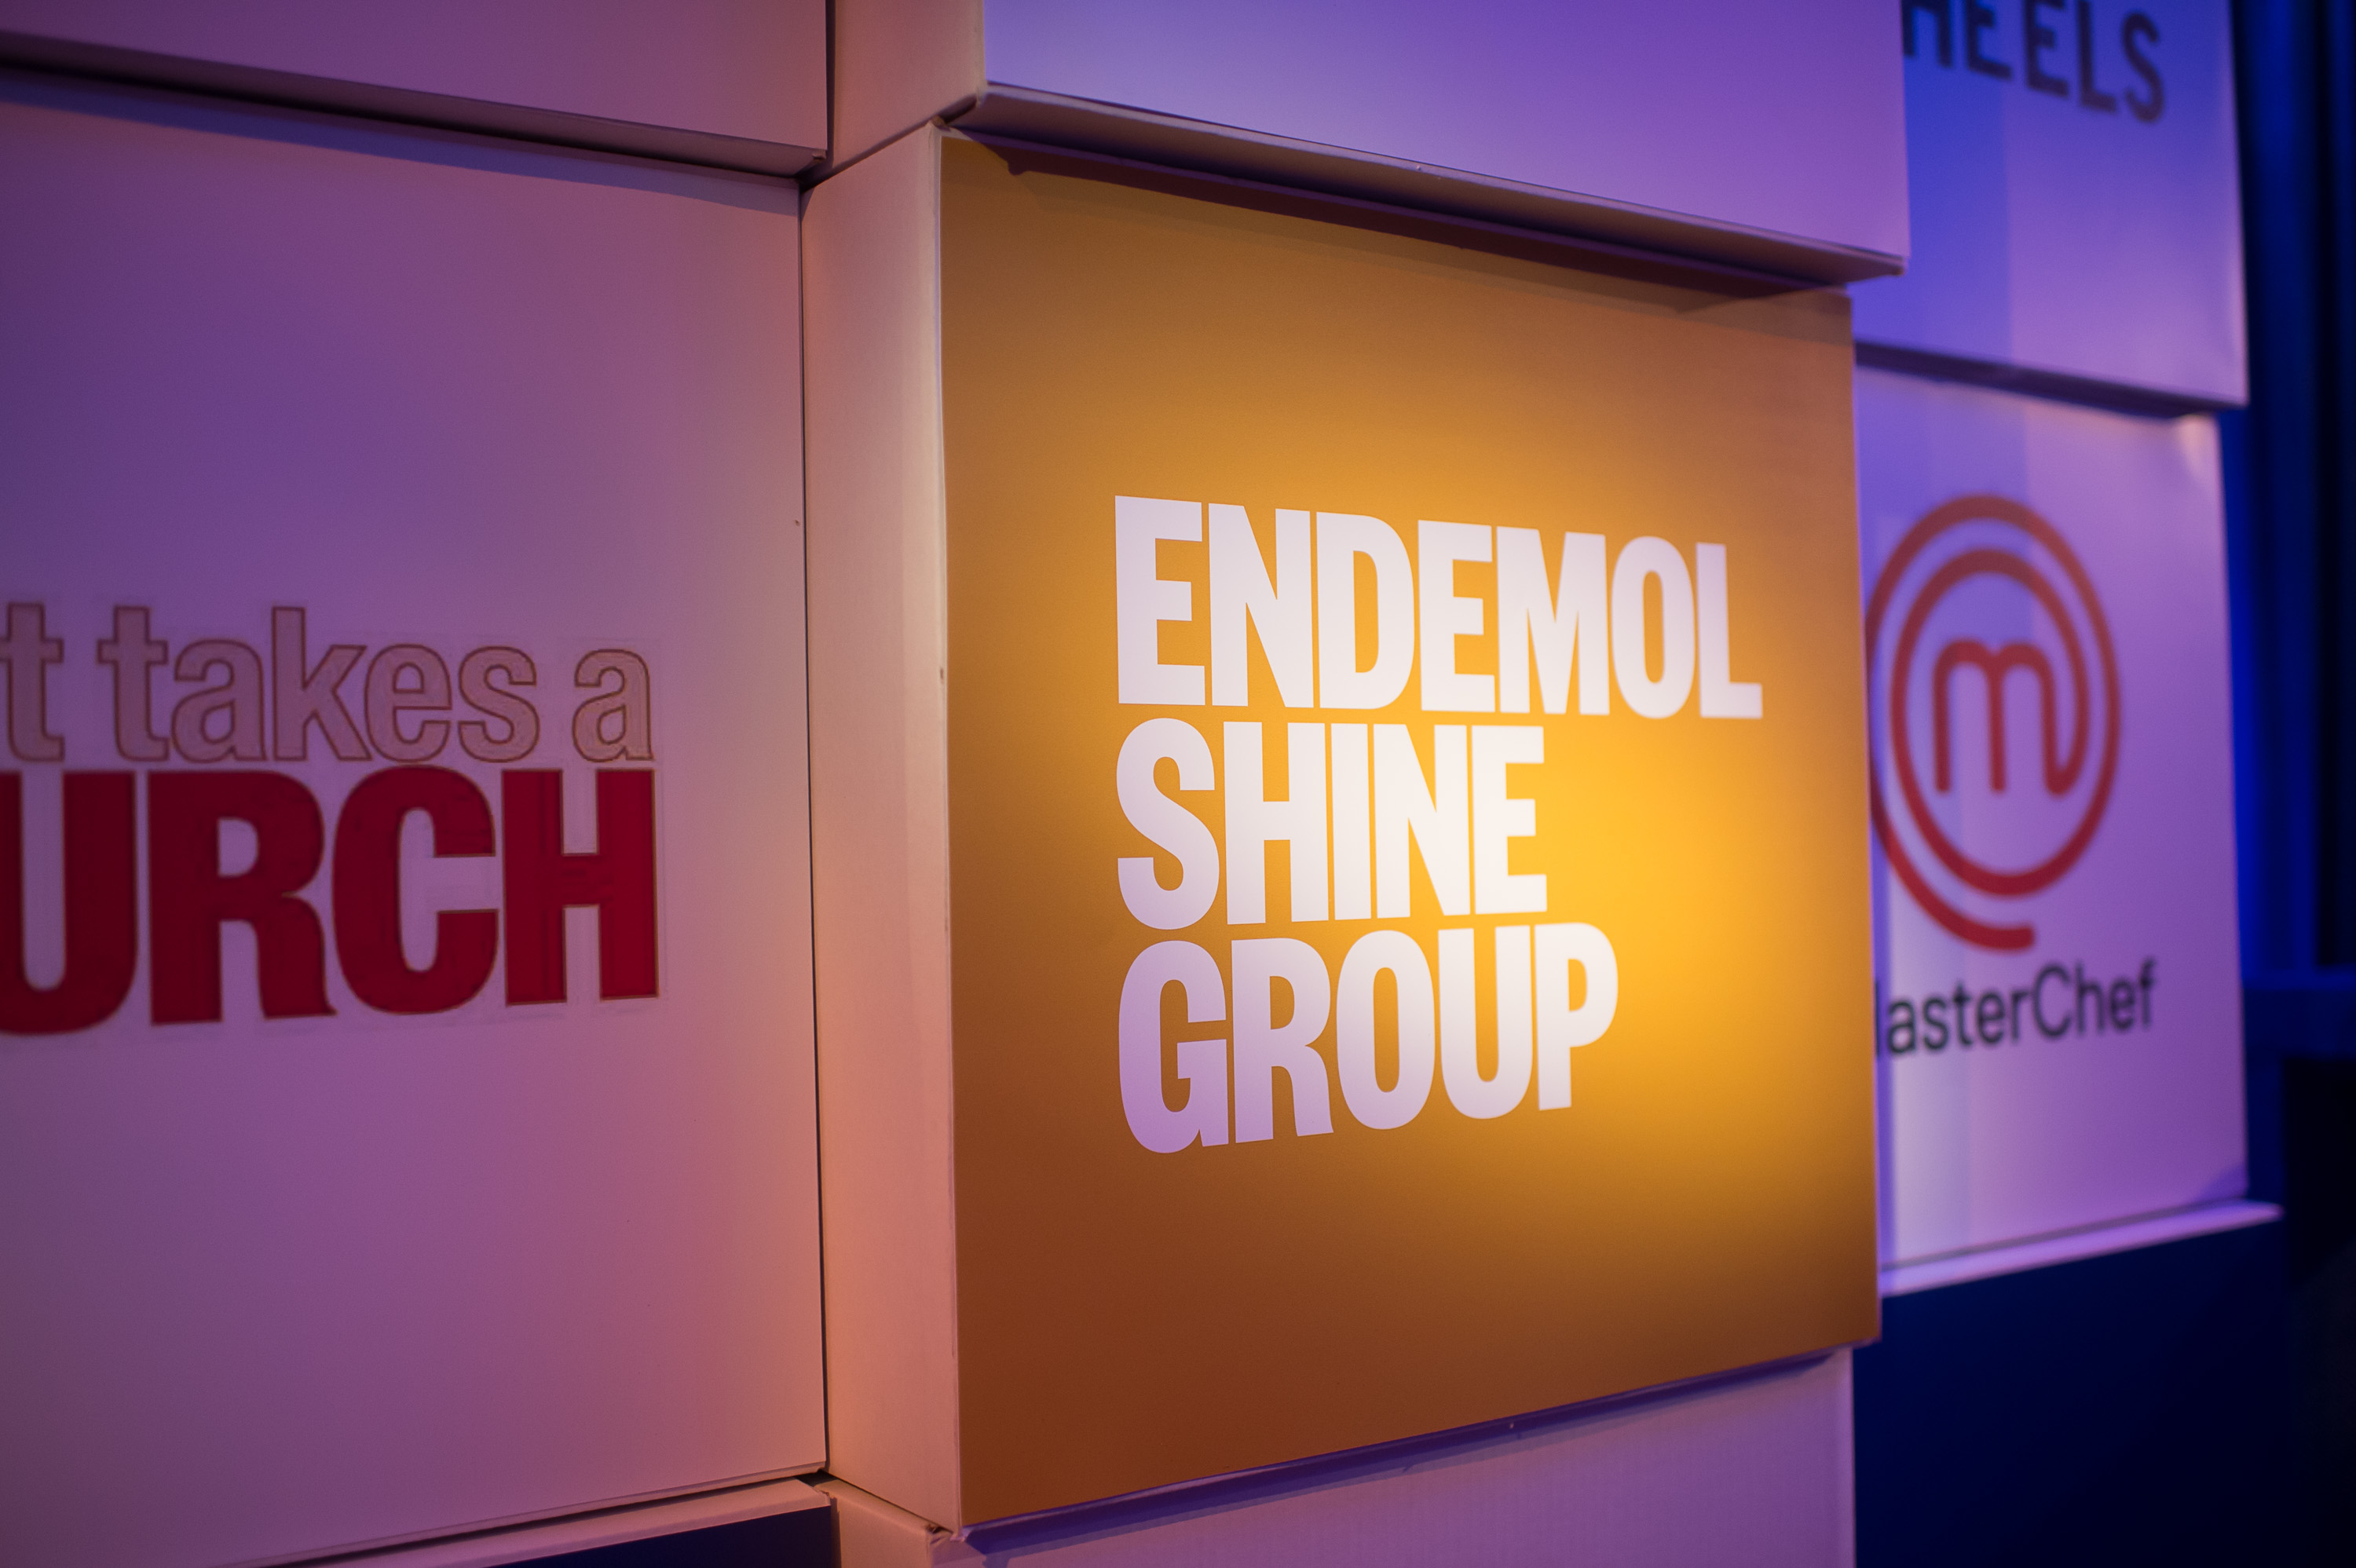 Endemol Shone Group